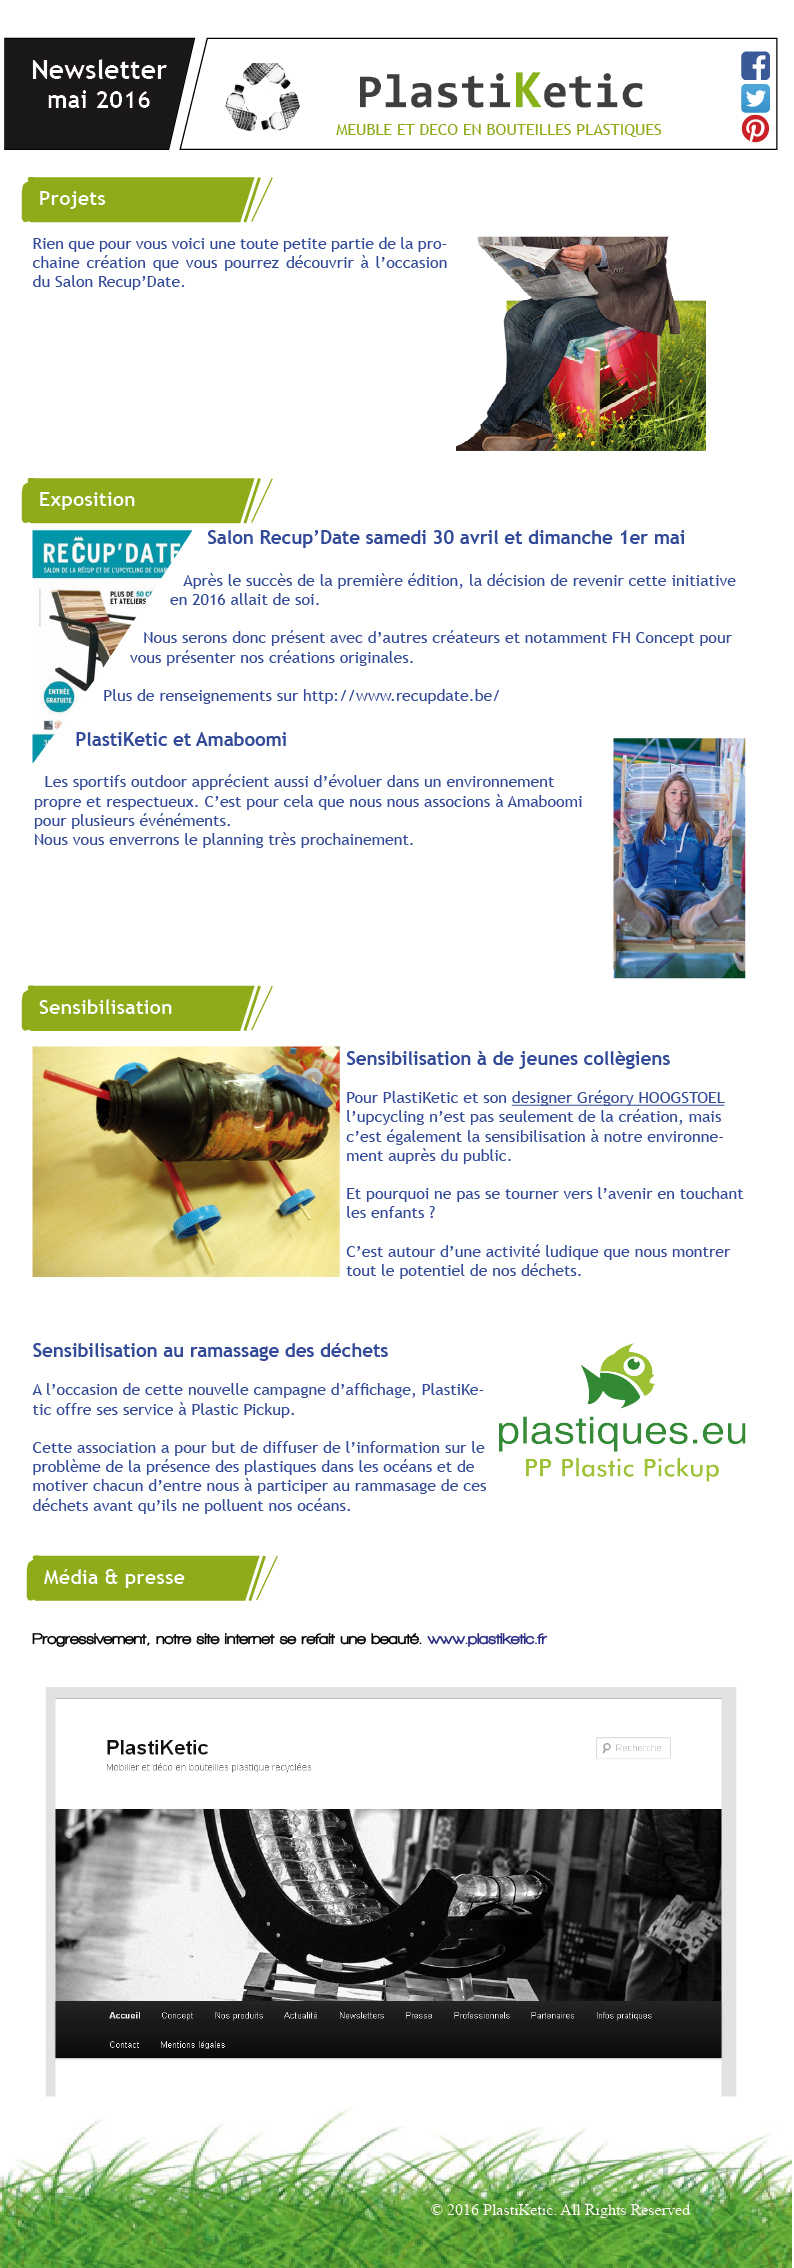 PlastiKetic_Newsletter_mai_2016